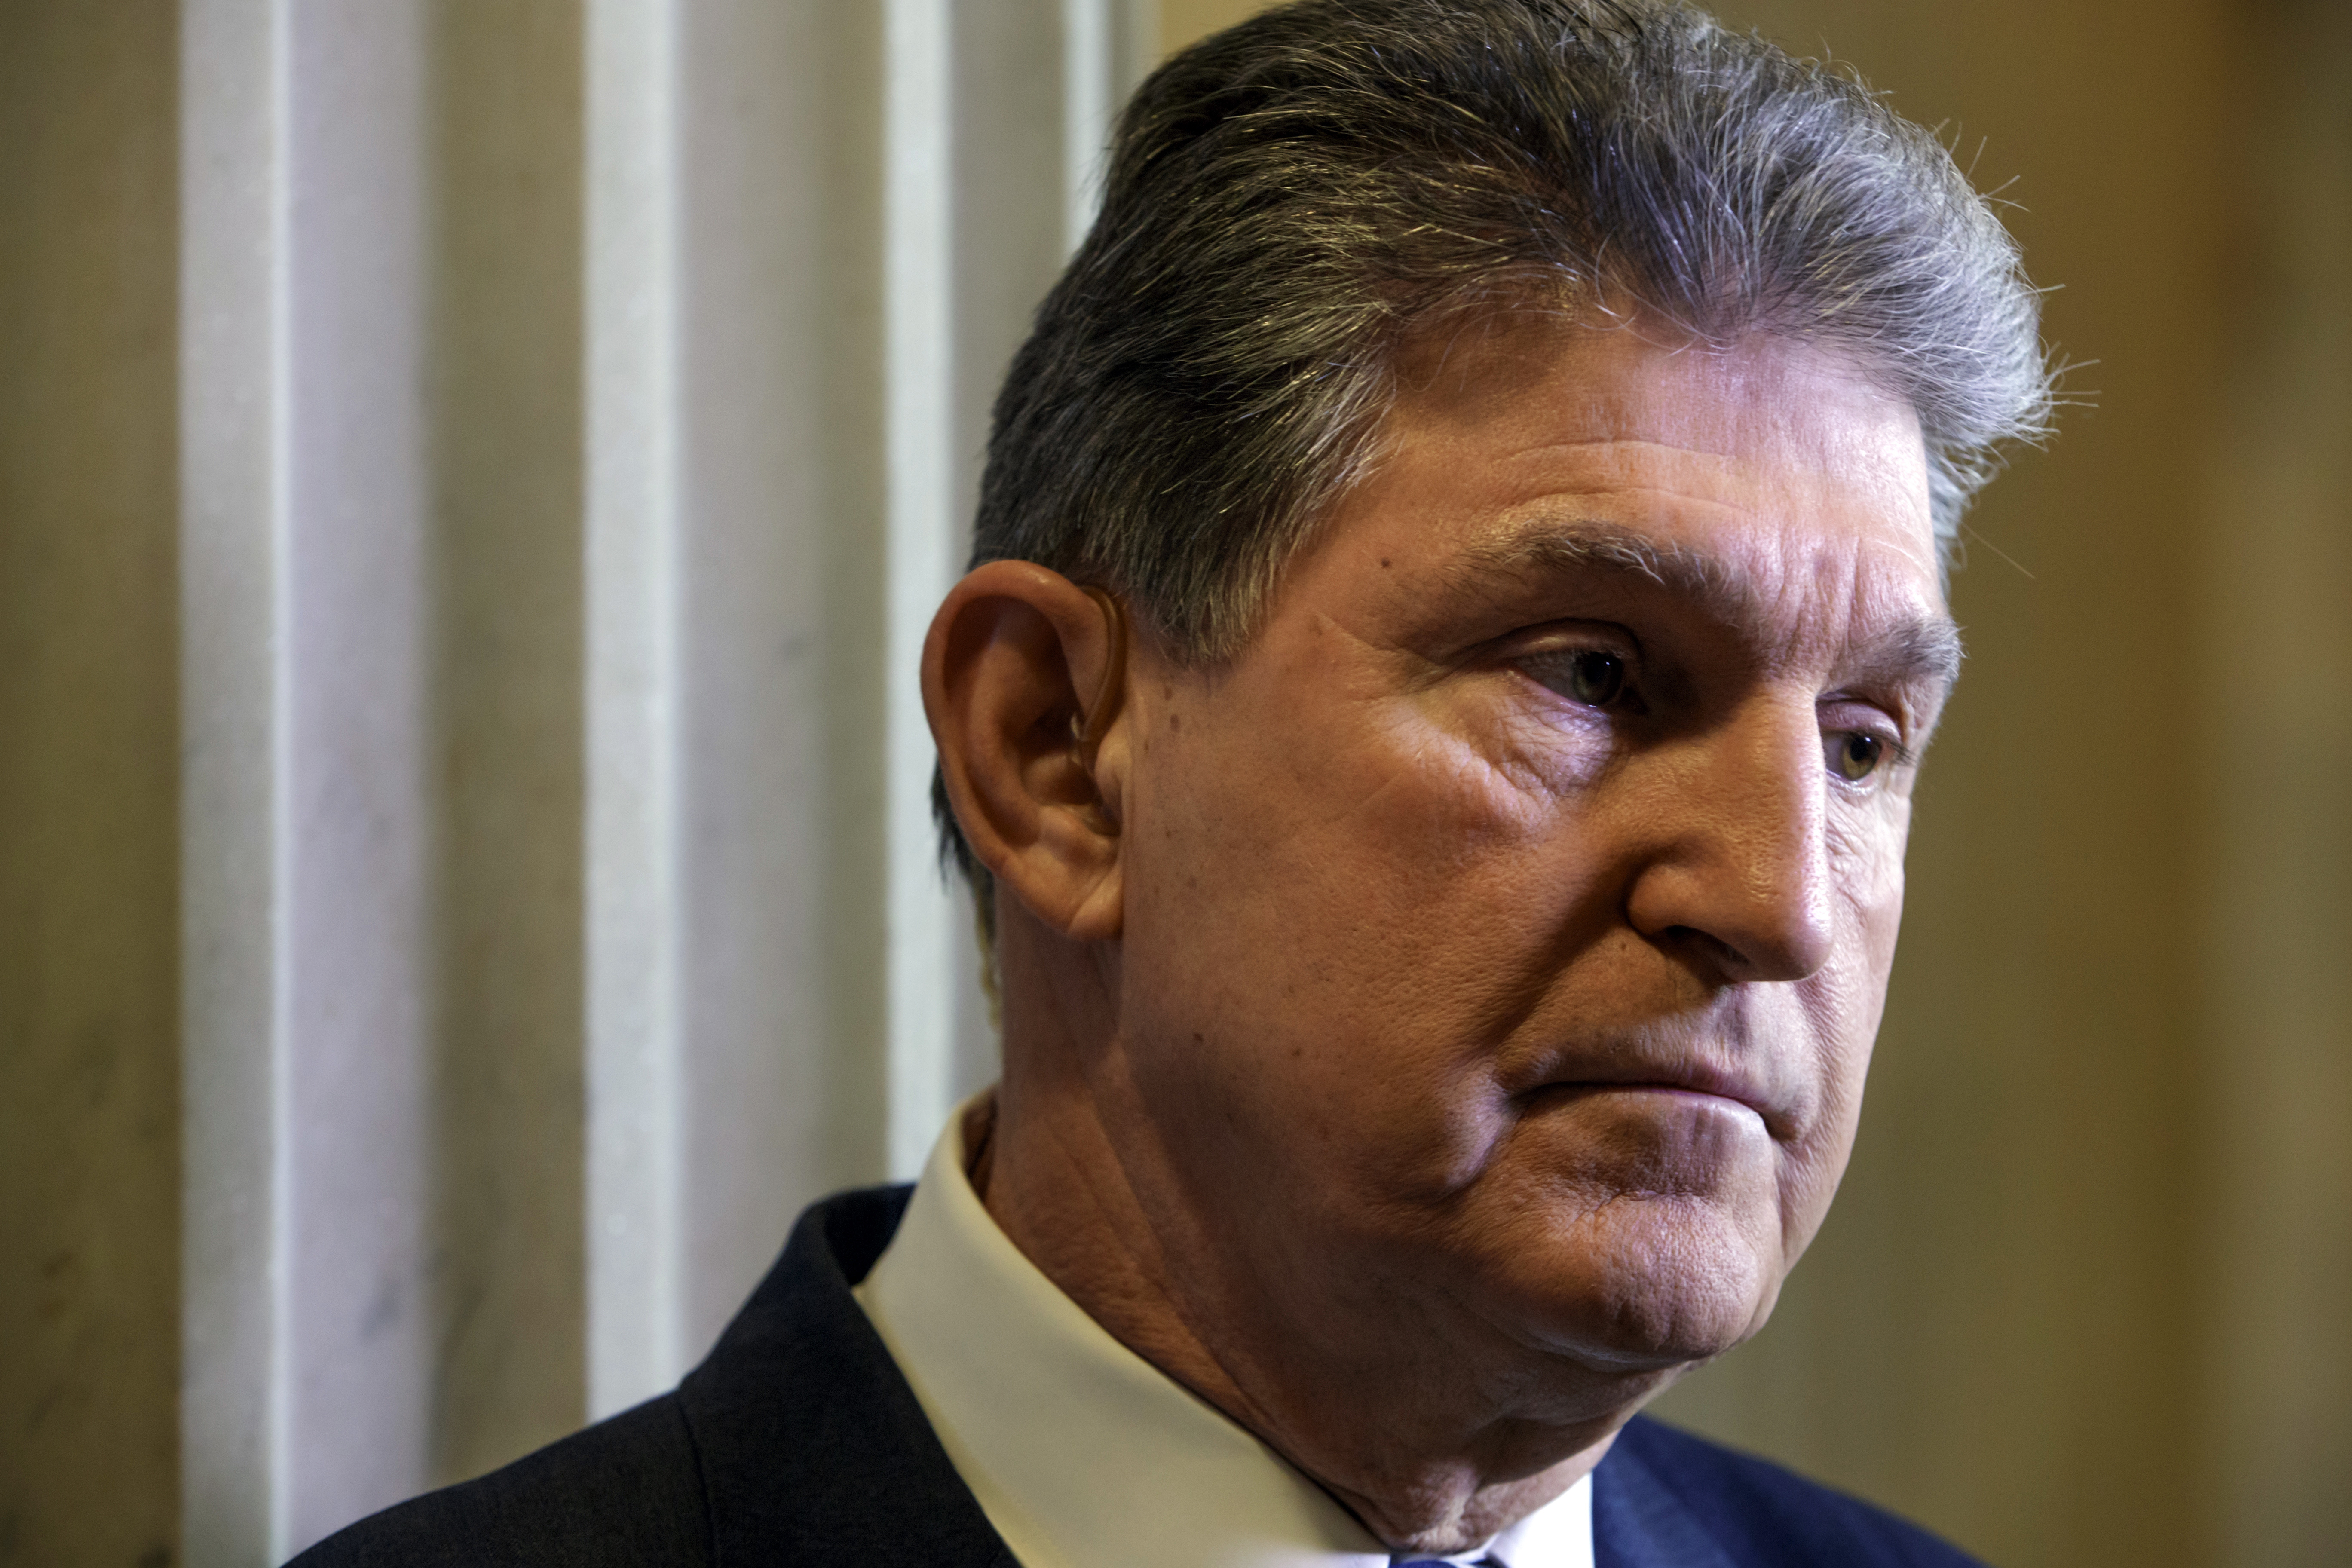 Sen. Joe Manchin Says He Will Not Vote To Eliminate Filibuster